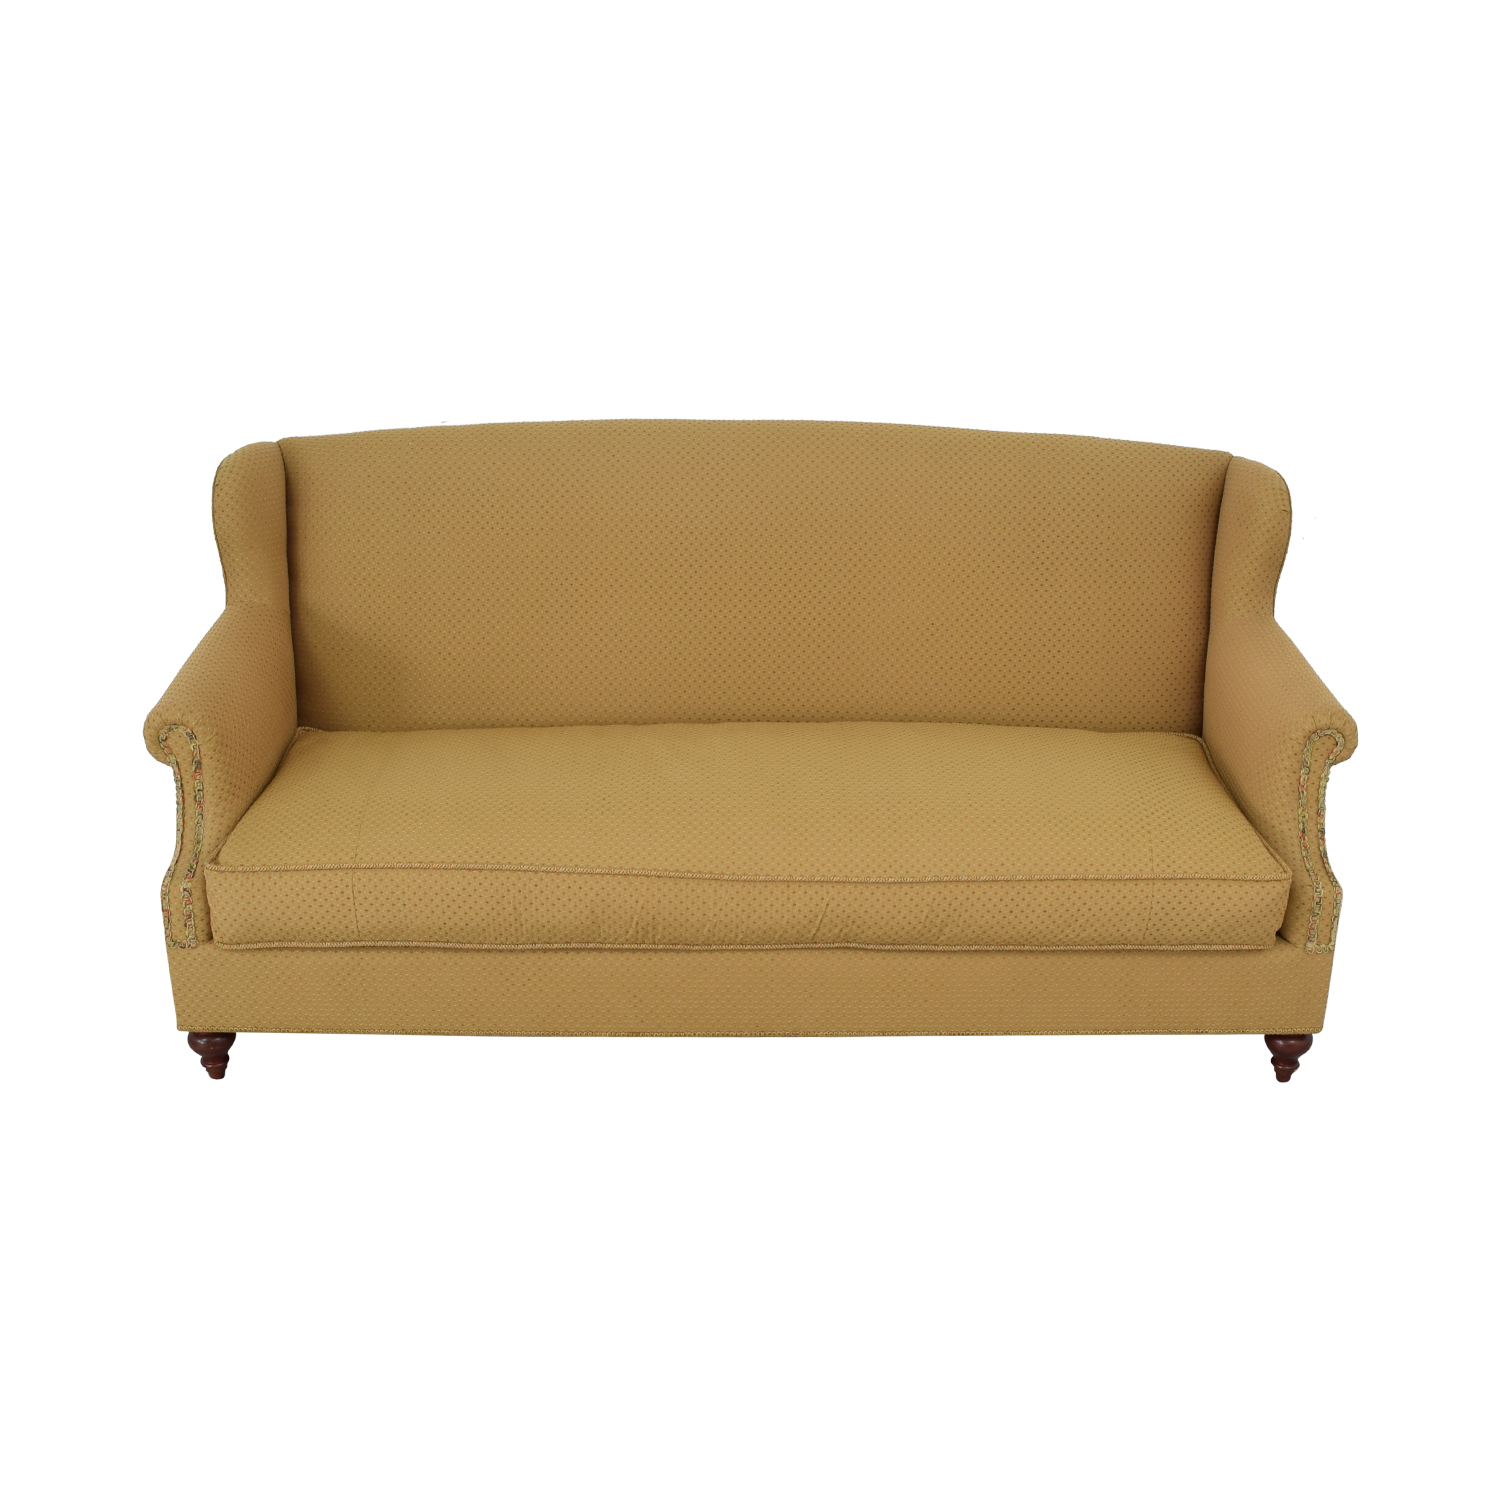 Excellent 75 Off Domain Home Domain Home Victorian Style Ember Sofa Sofas Caraccident5 Cool Chair Designs And Ideas Caraccident5Info